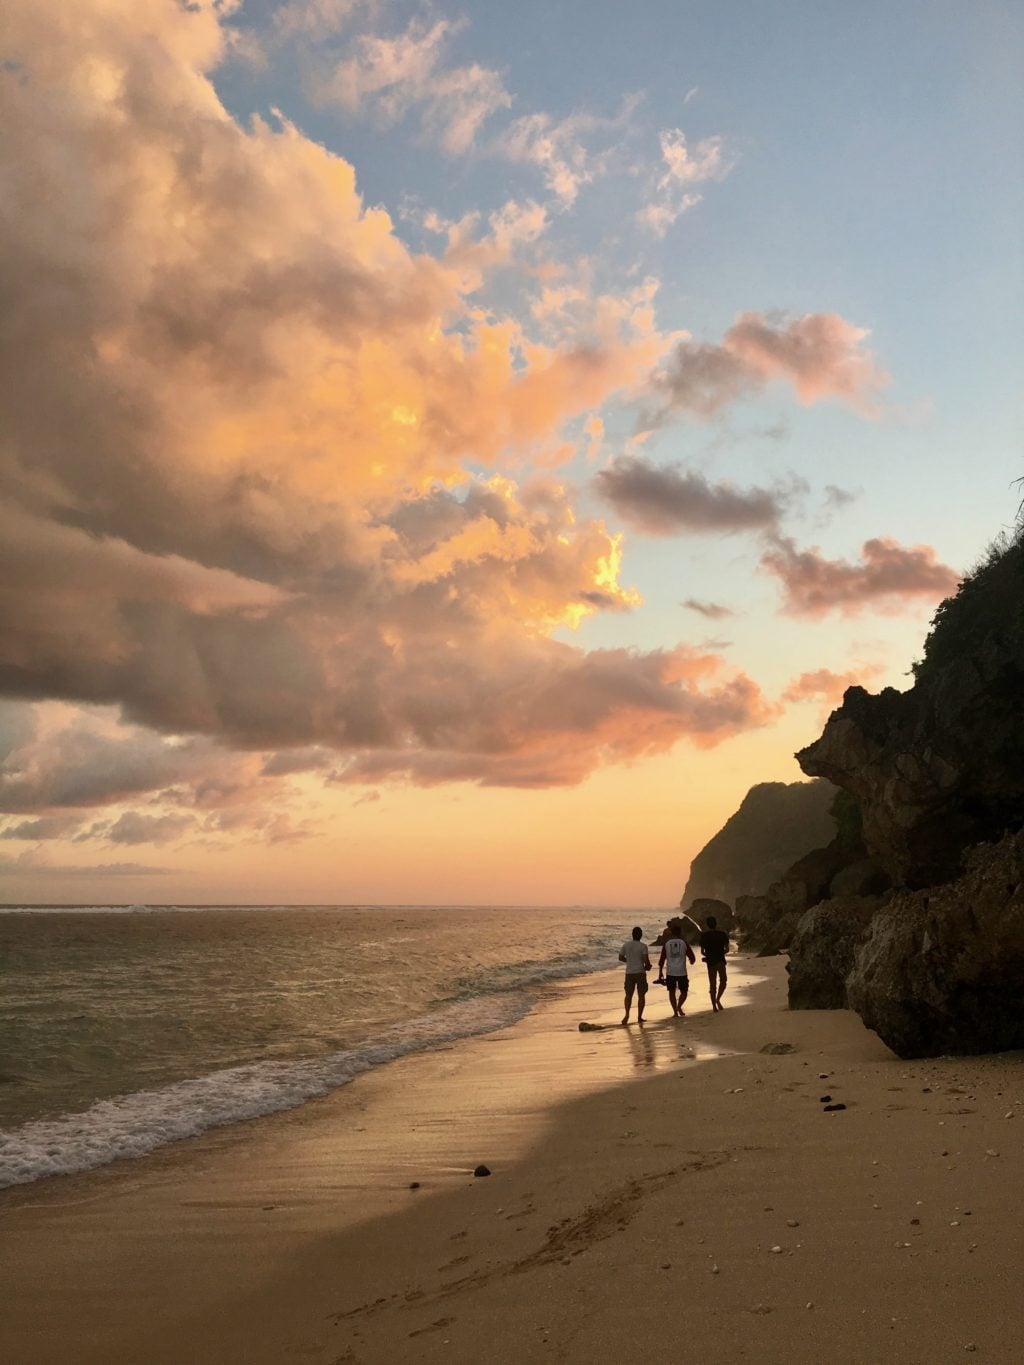 Bali Beach •10 Essential Things to Pack for Bali, Indonesia   The Wanderful Me